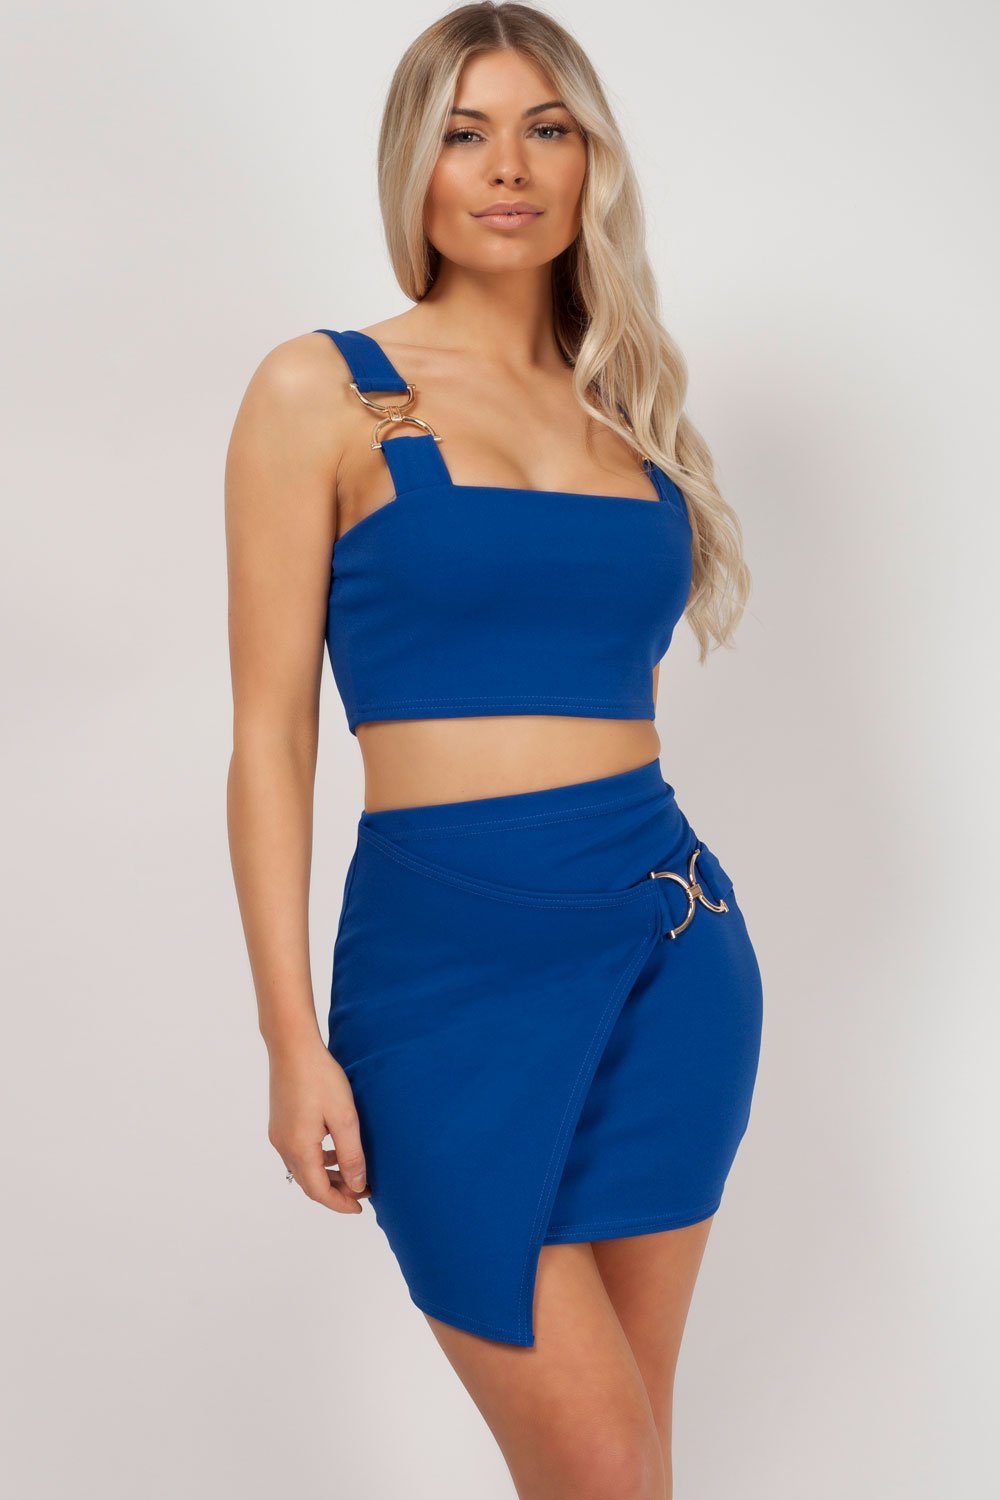 skirt co ord royal blue